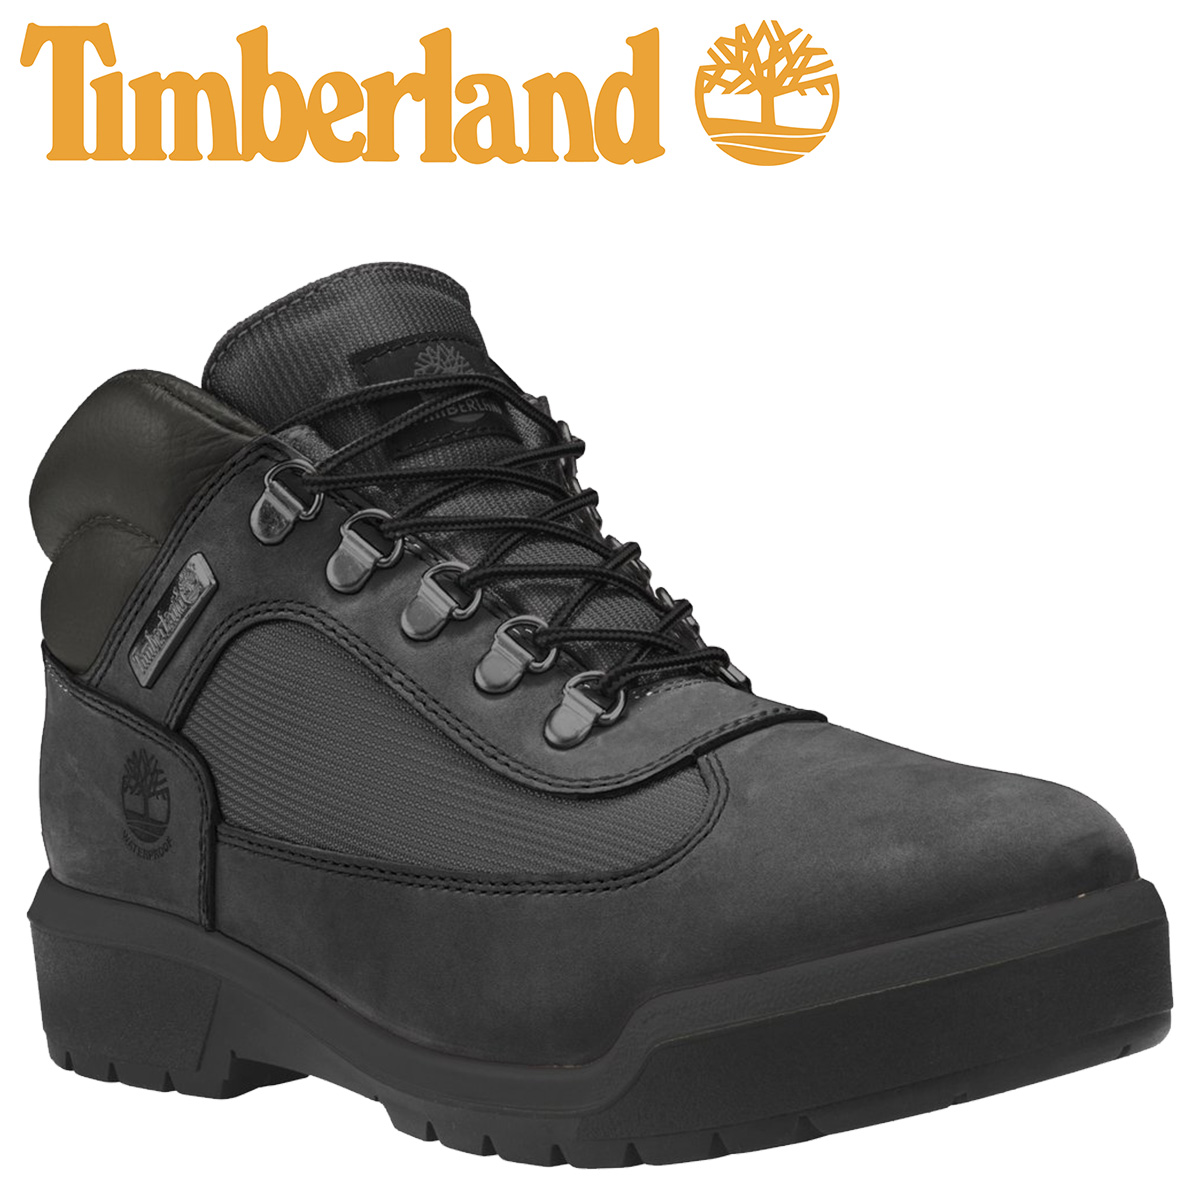 1fce9ab56f48 Timberland boots men Timberland WATERPROOF FIELD BOOTS F L A1A12 D Wise  black  load planned Shinnyu load in reservation product 10 23 containing